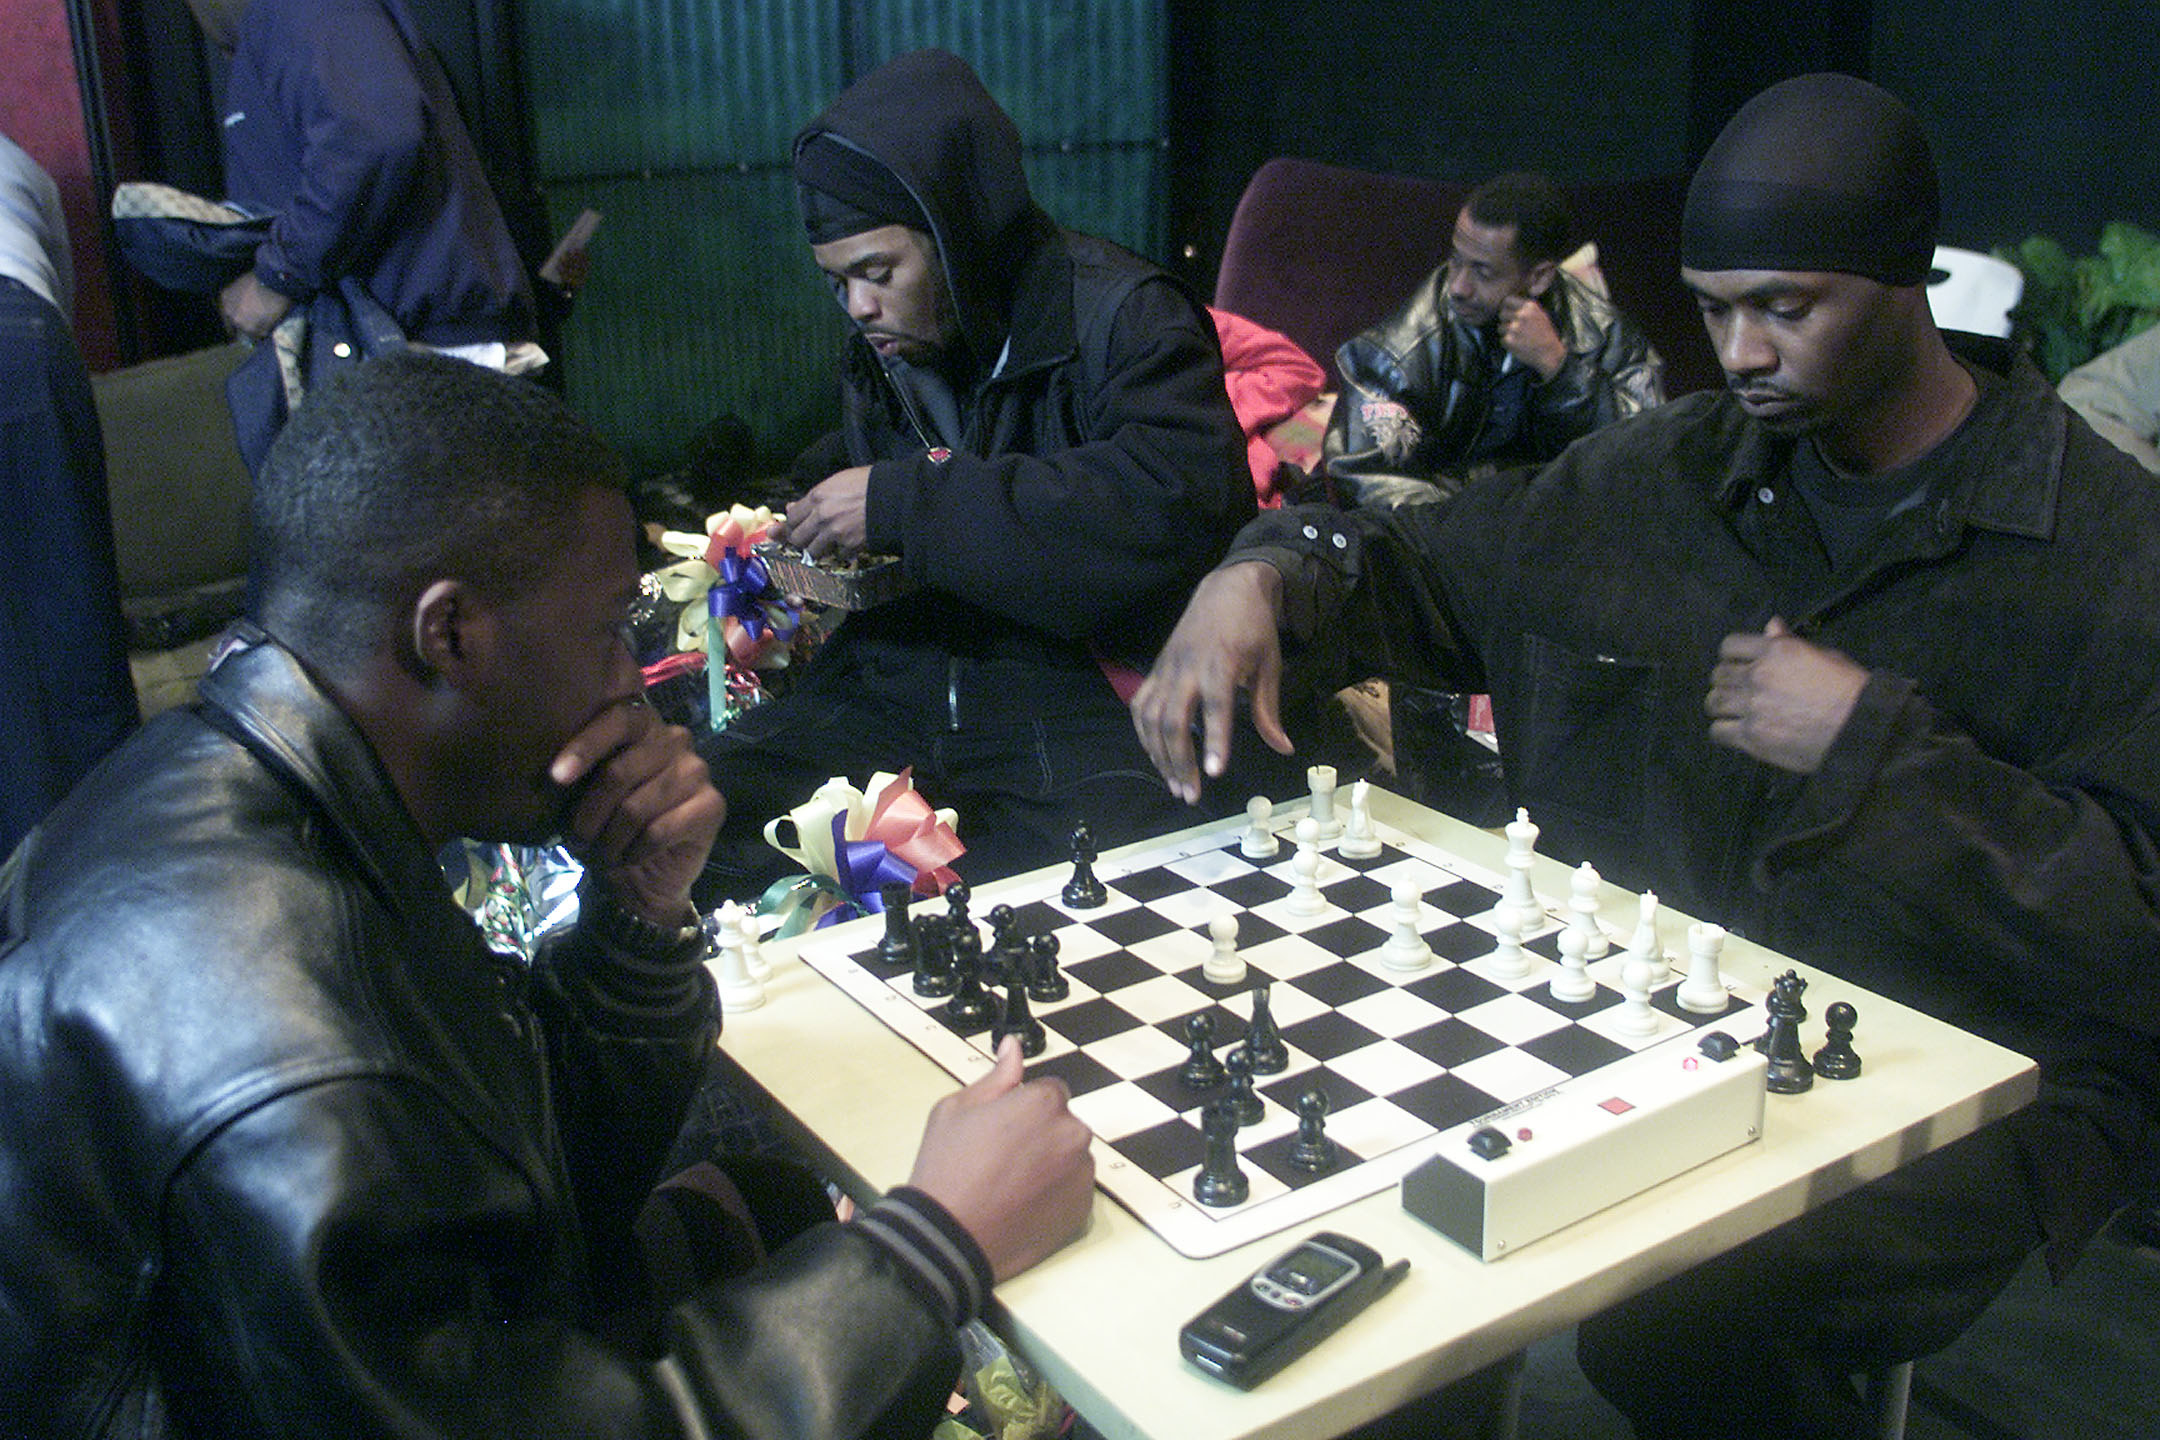 Four men hang out in a backstage green room; two of them in the foreground play chess